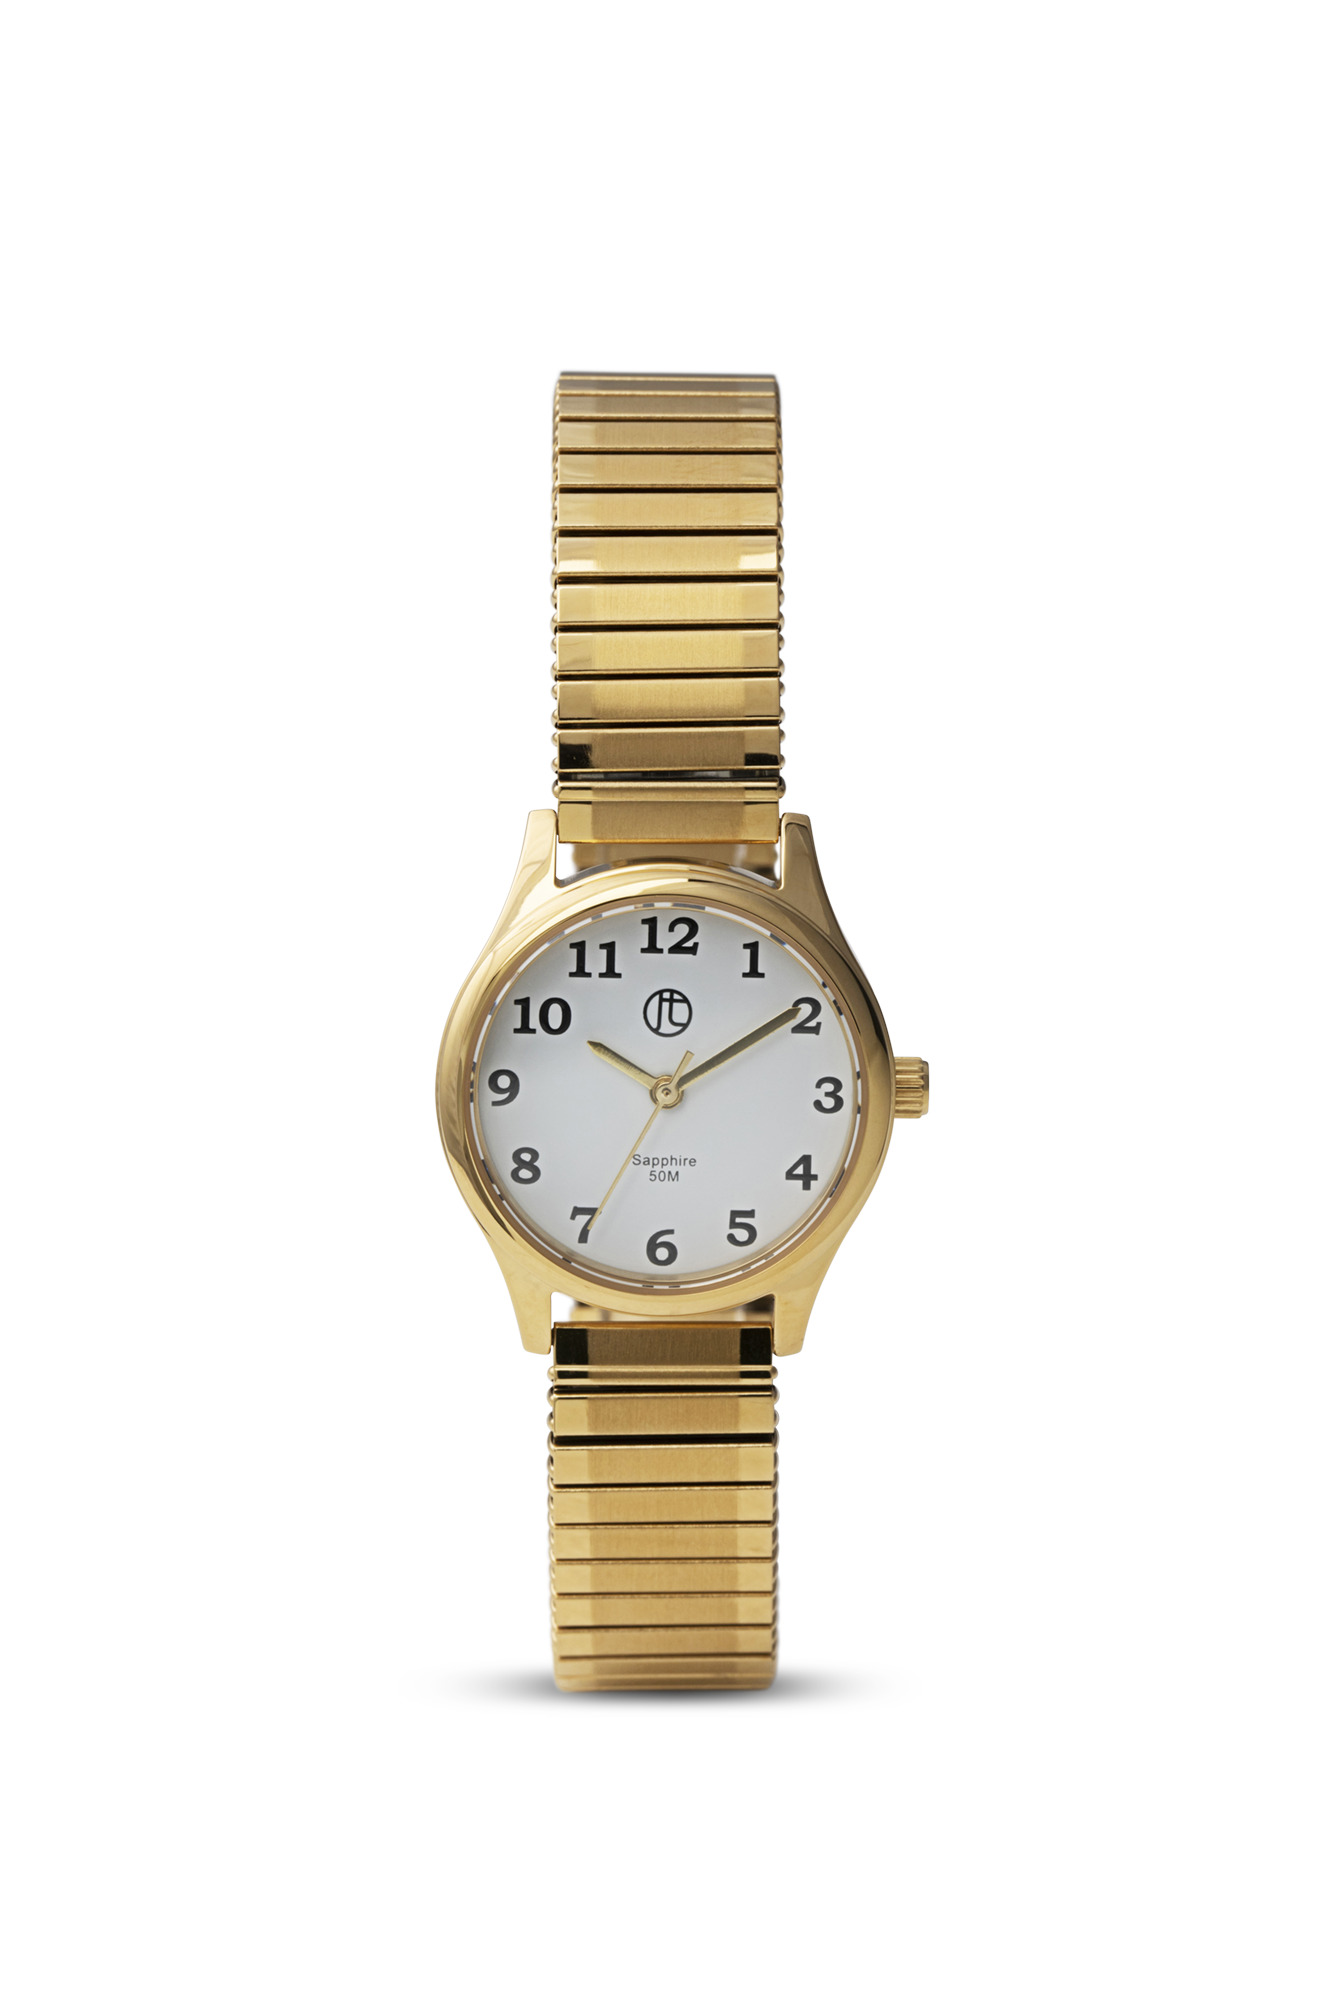 Image of   Jeweltime dame ur med flexrem - 3176L-F